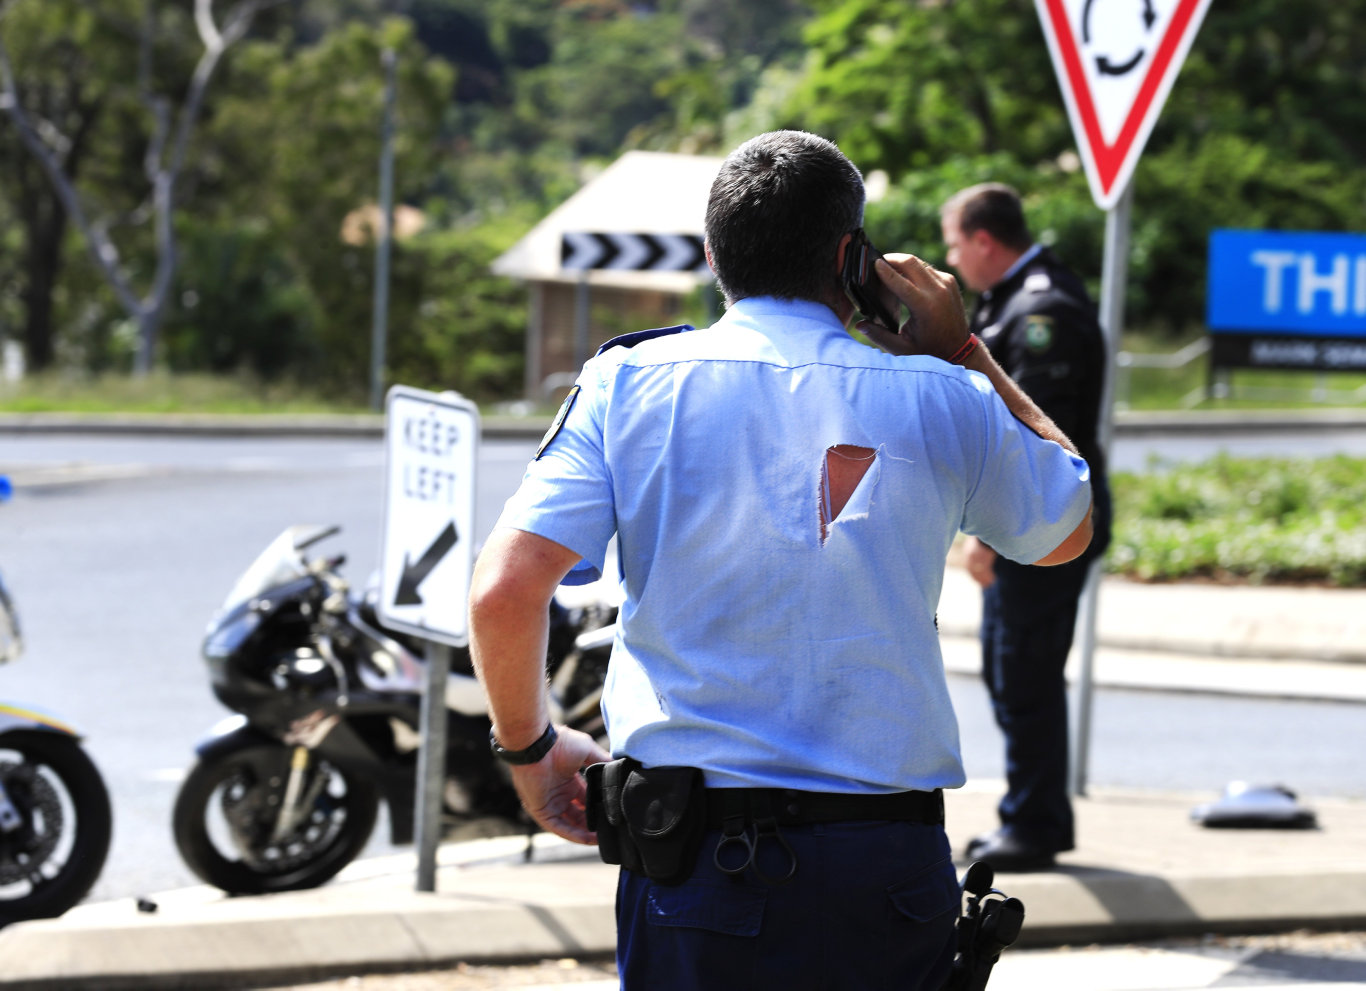 NSW Police inspect an alleged stolen motor bike which Police had been pursuing through Banora Point when it crashed after taking a corner too fast on the corner of Fraser Drive and Terranora Road at Banora Point. Photo: Scott Powick